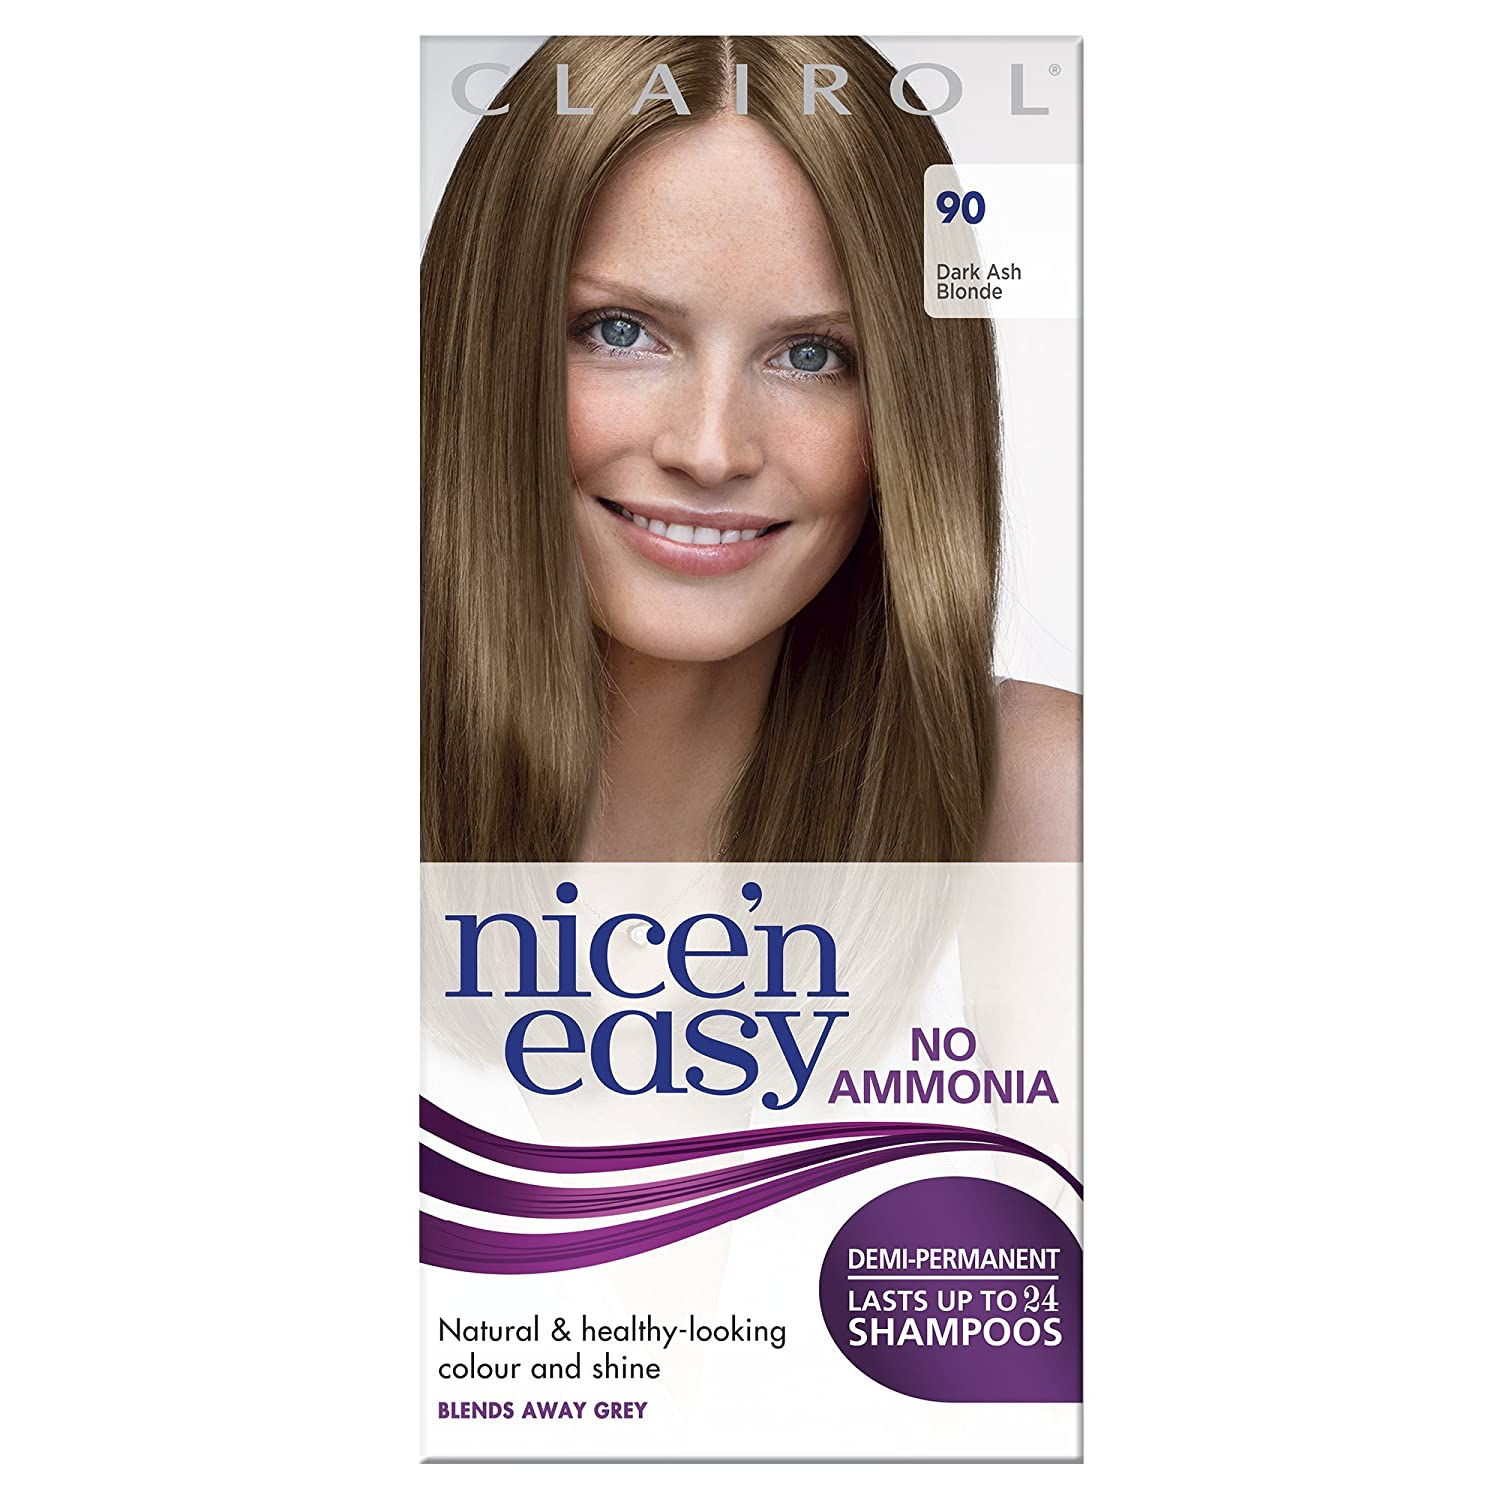 Clairol Nicen Easy Semi Permanent Hair Dye No Ammonia 90 Dark Ash